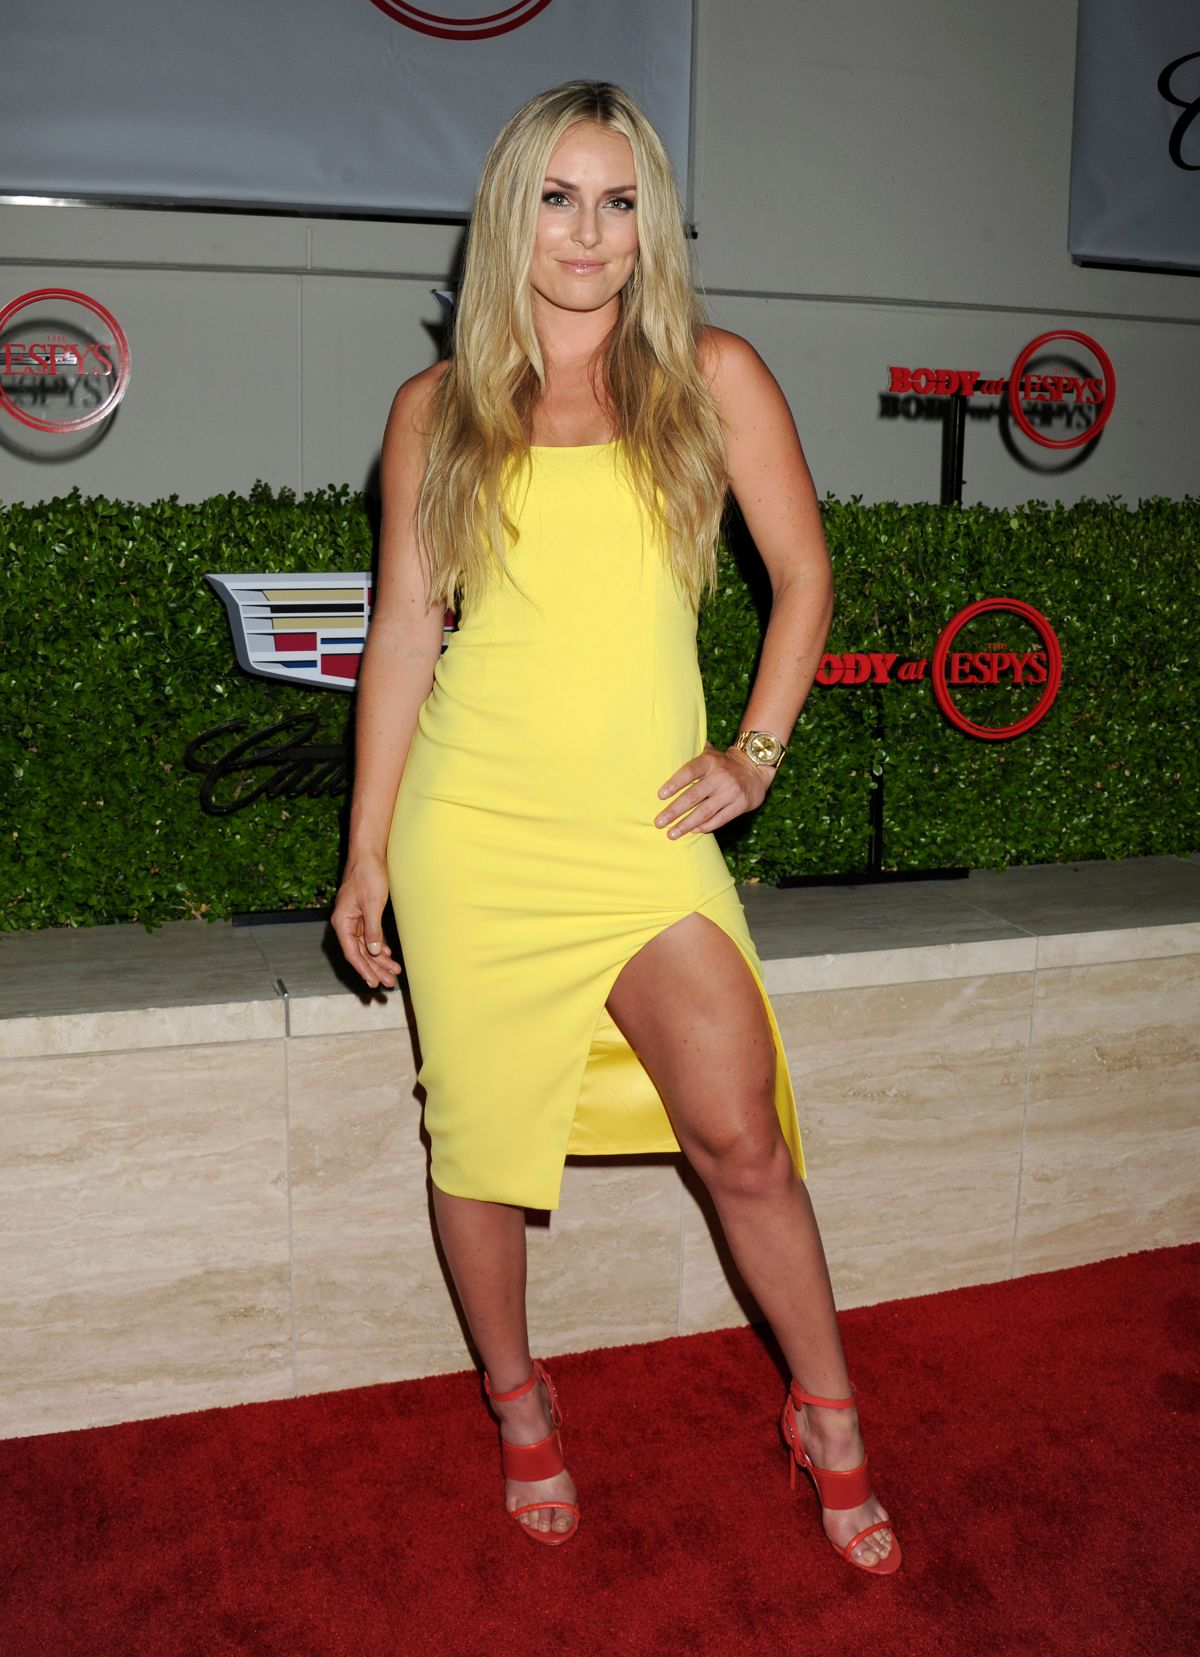 LINDSEY VONN at Body at Espys at Milk Studios in Hollywood ...